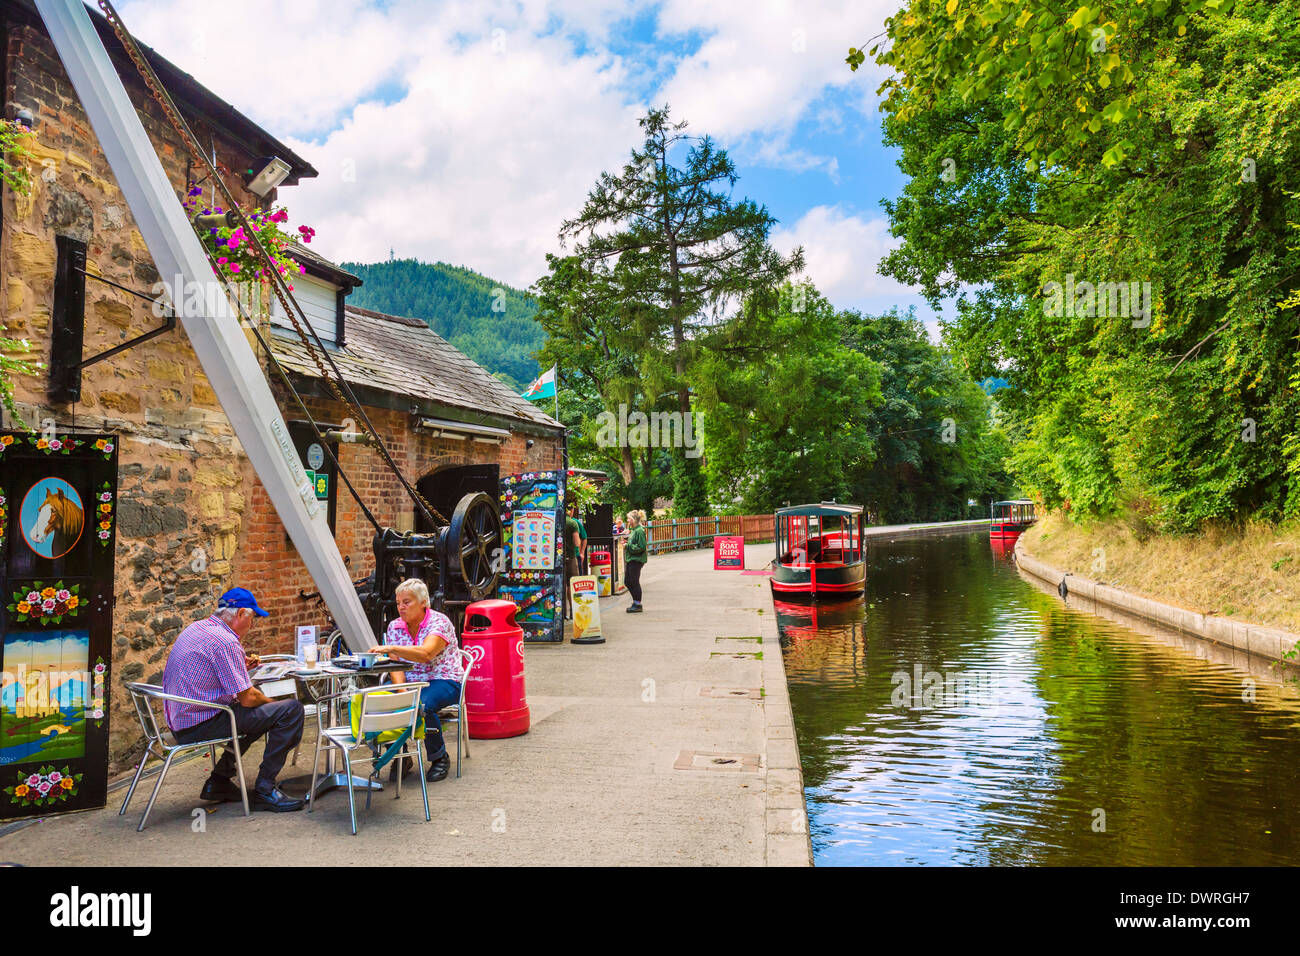 Cafe on the Llangollen Canal, Llangollen, Denbighshire, Wales, UK - Stock Image